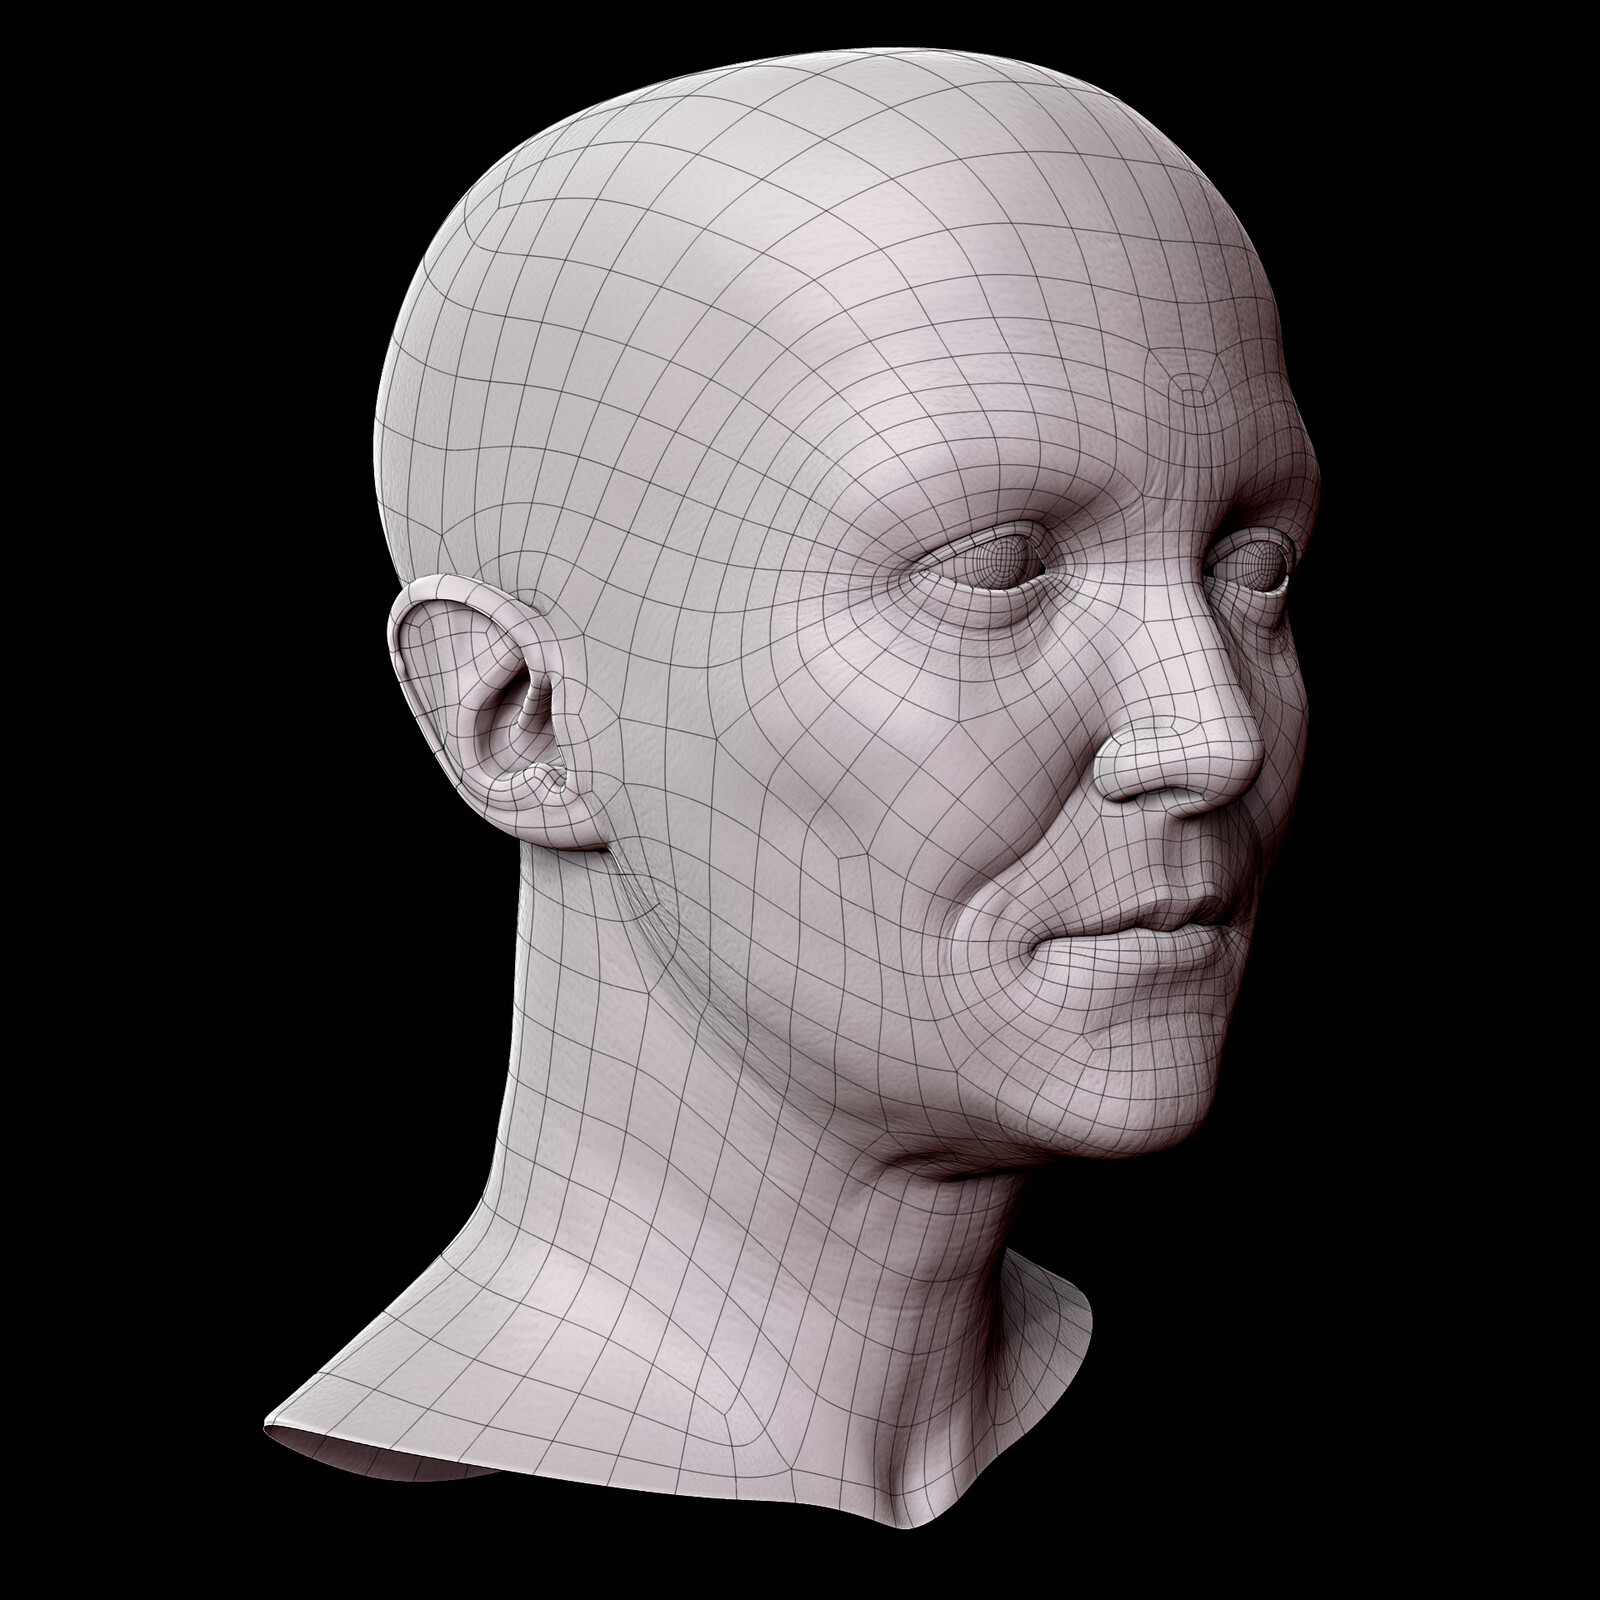 Retopologized Model Wireframe